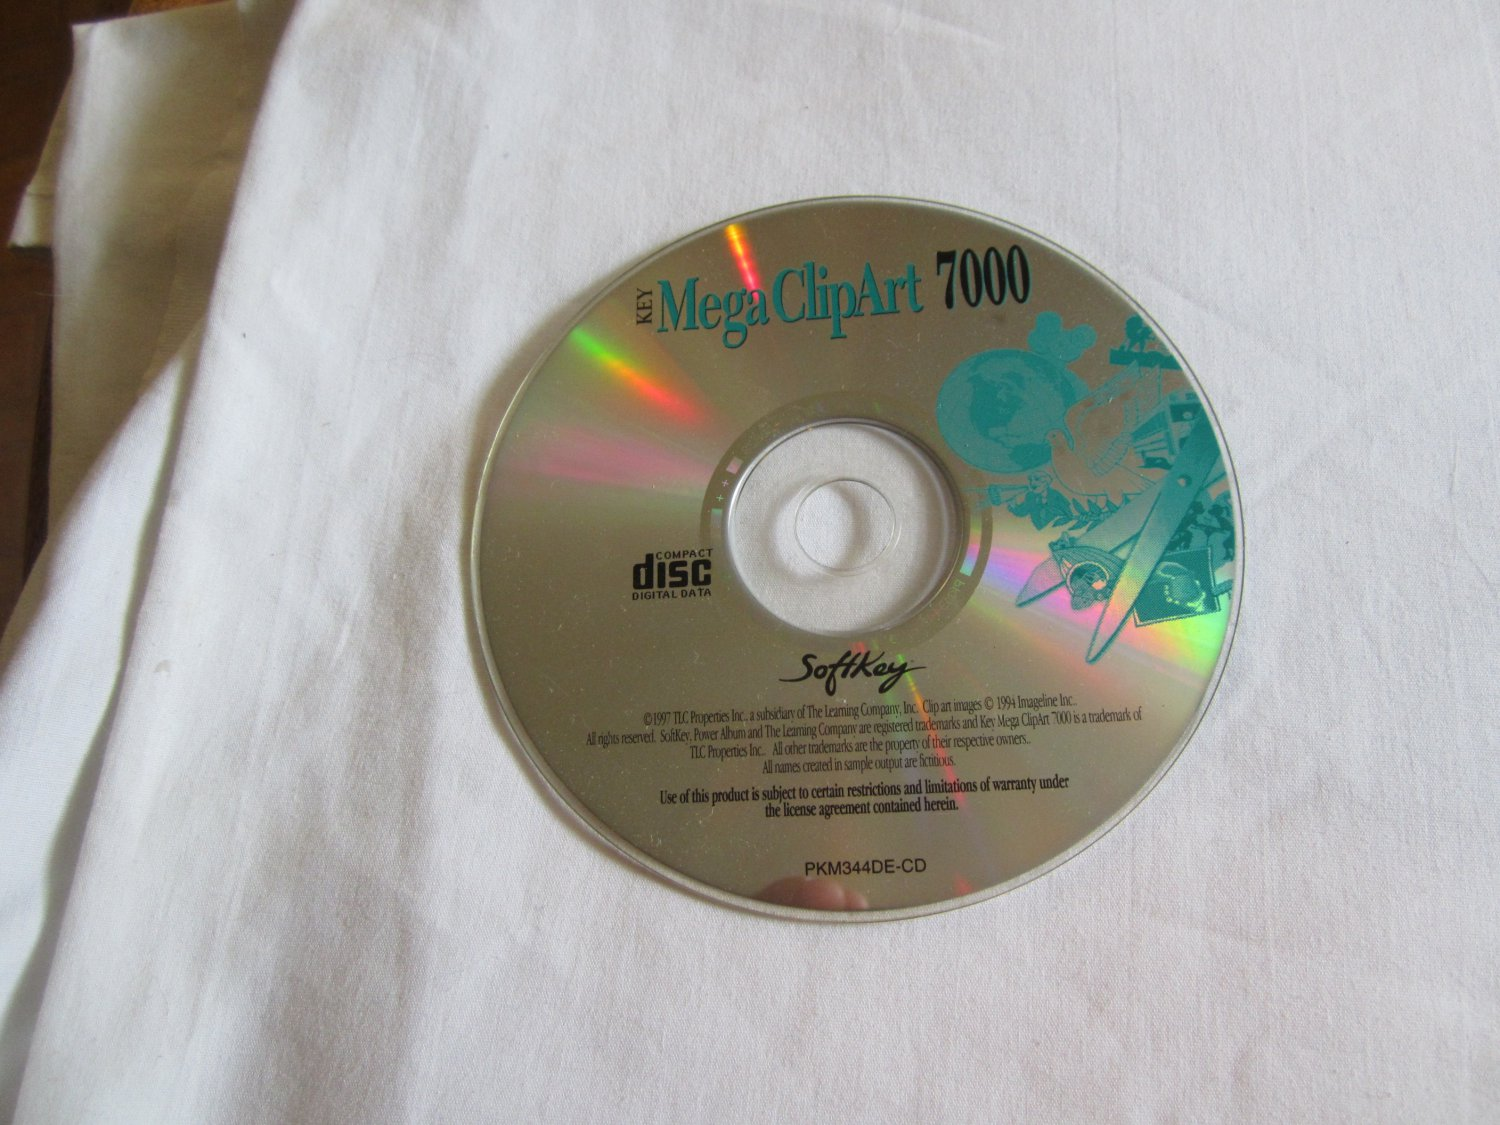 Key Mega Clipart 7000 CD ROM.